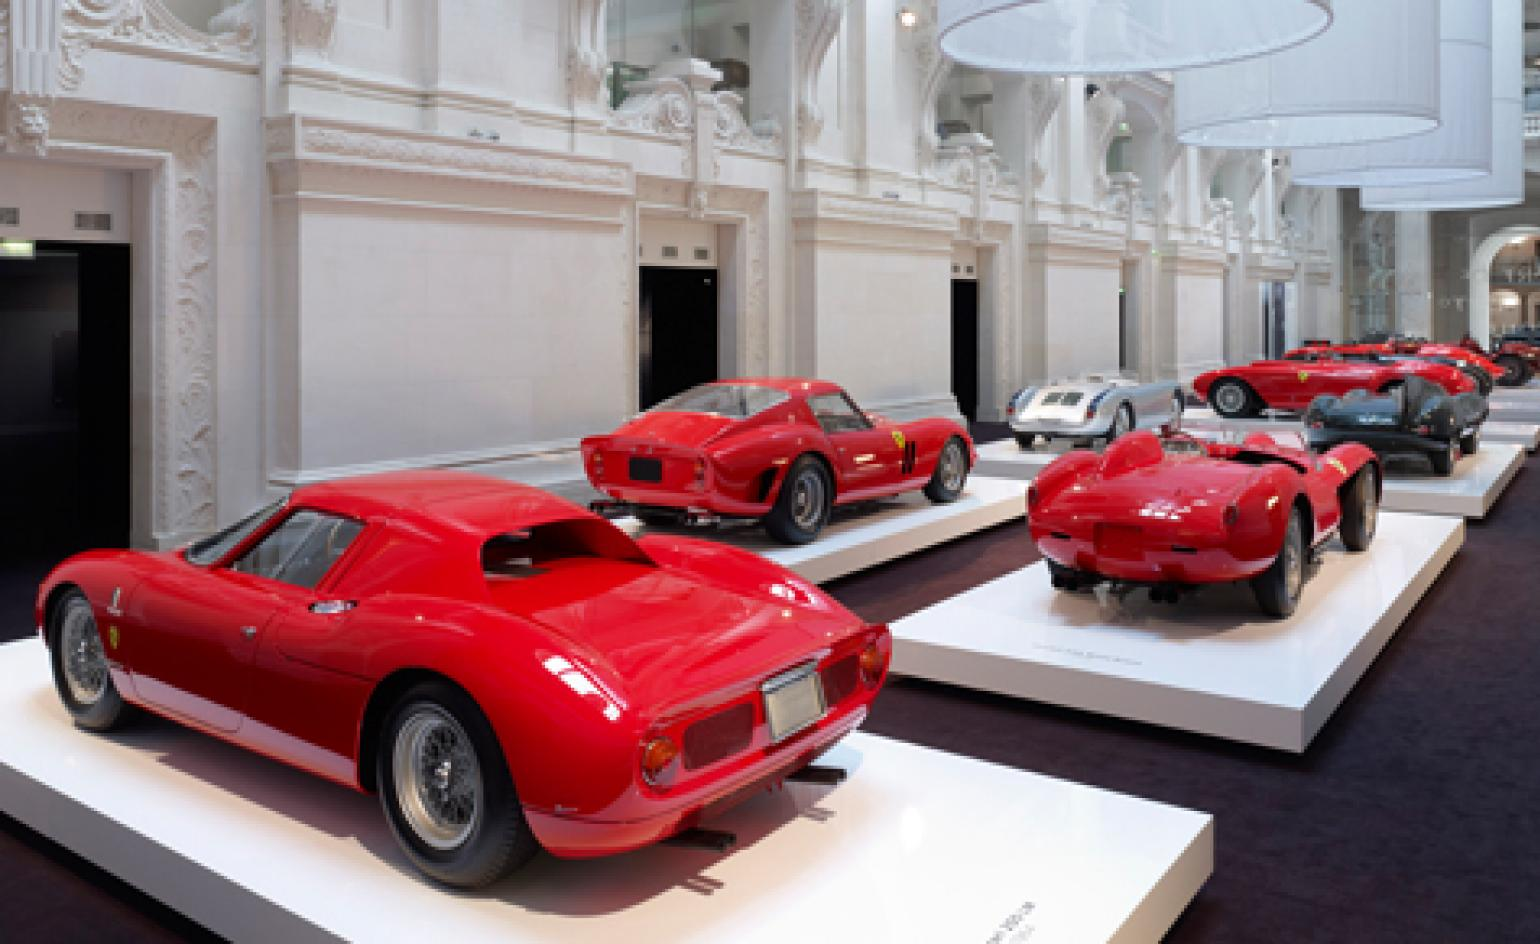 Ralph Laurens car collection on show in Paris | Lifestyle